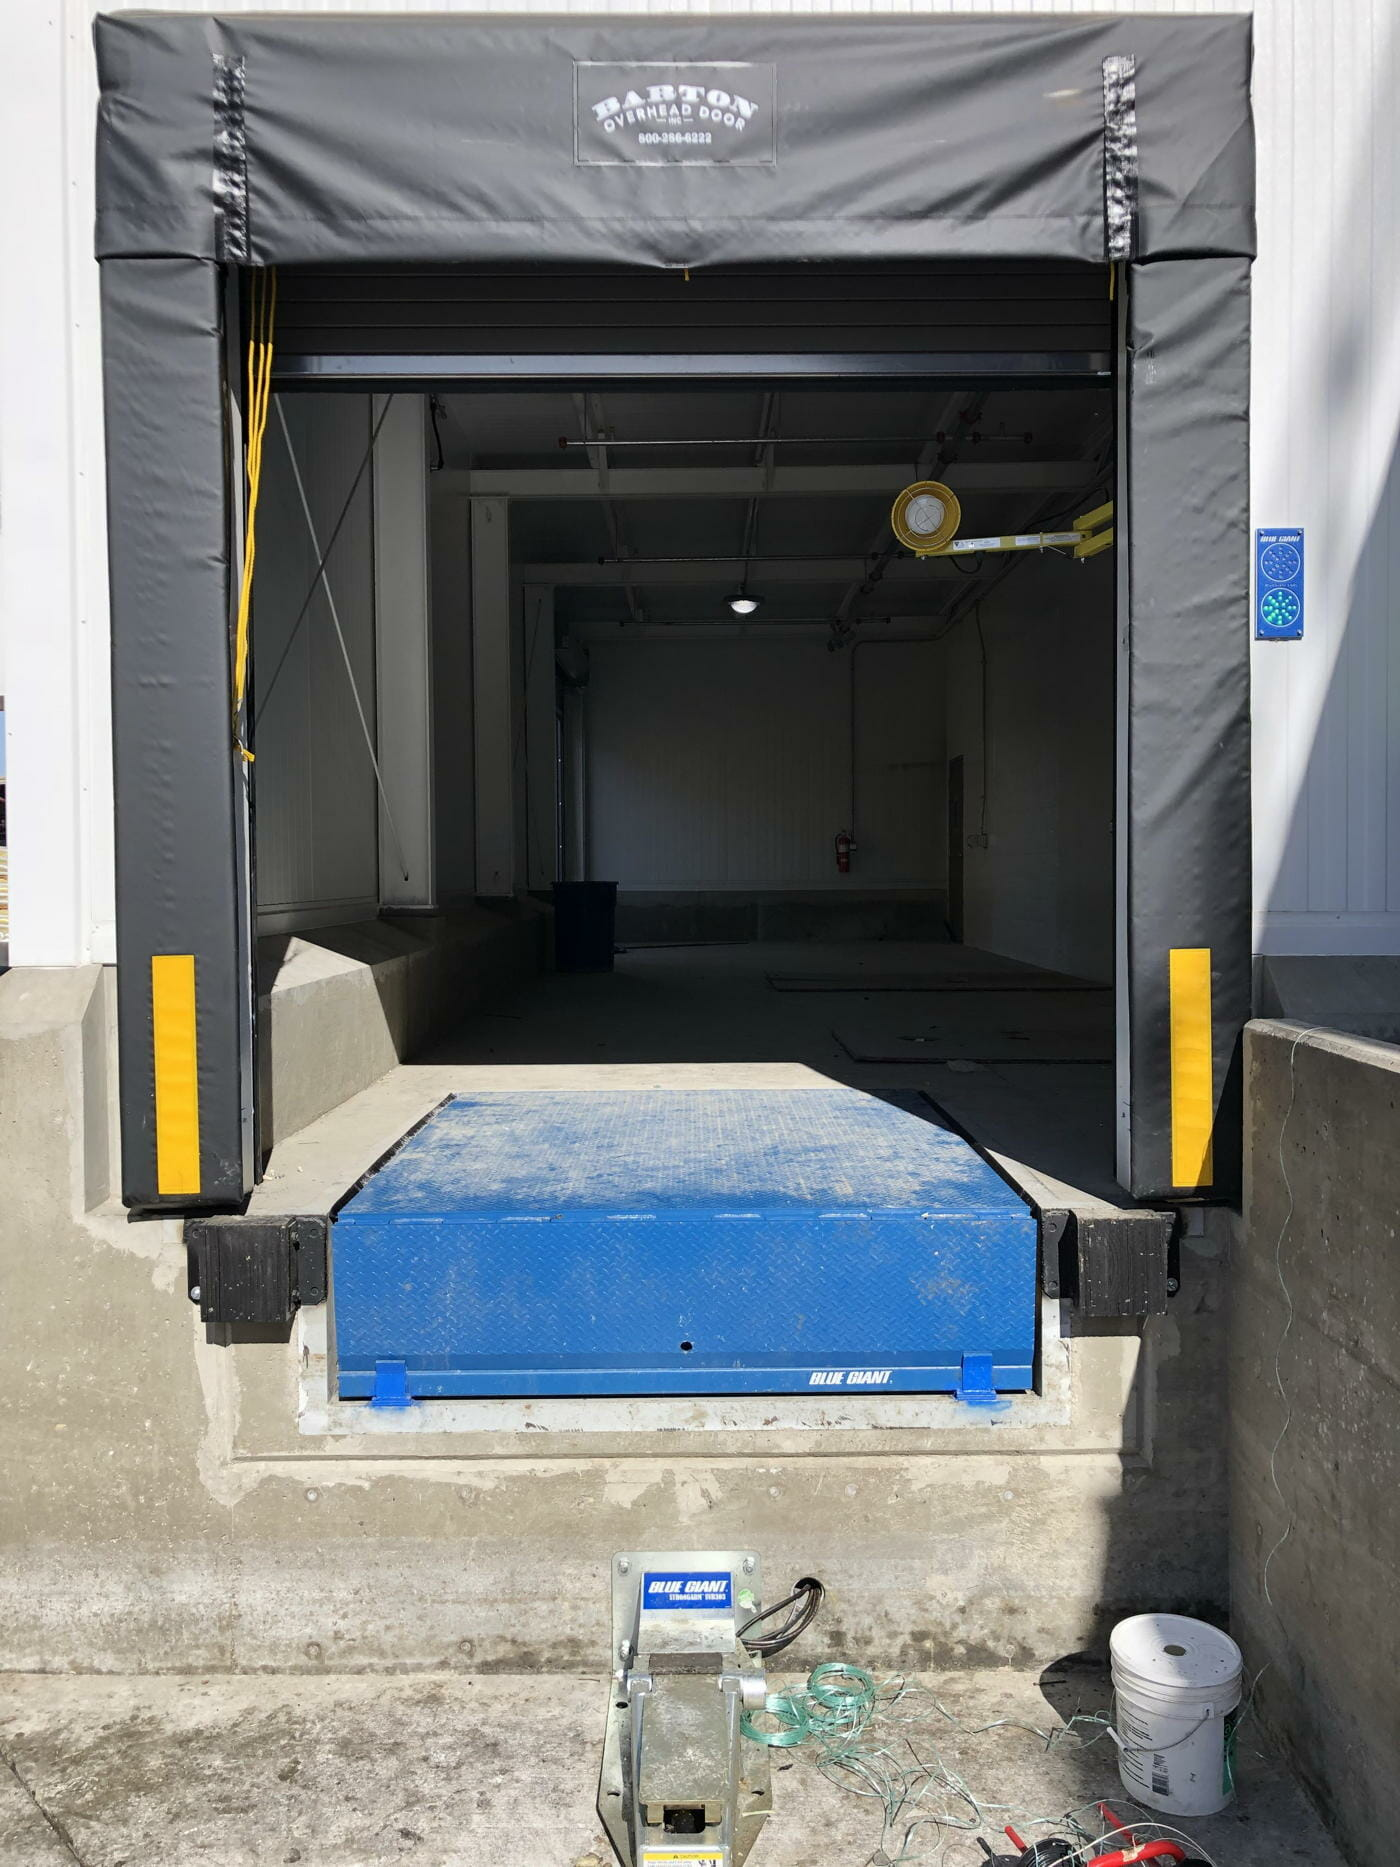 A Blue Giant loading dock, seal, and vehicle restraint installed.